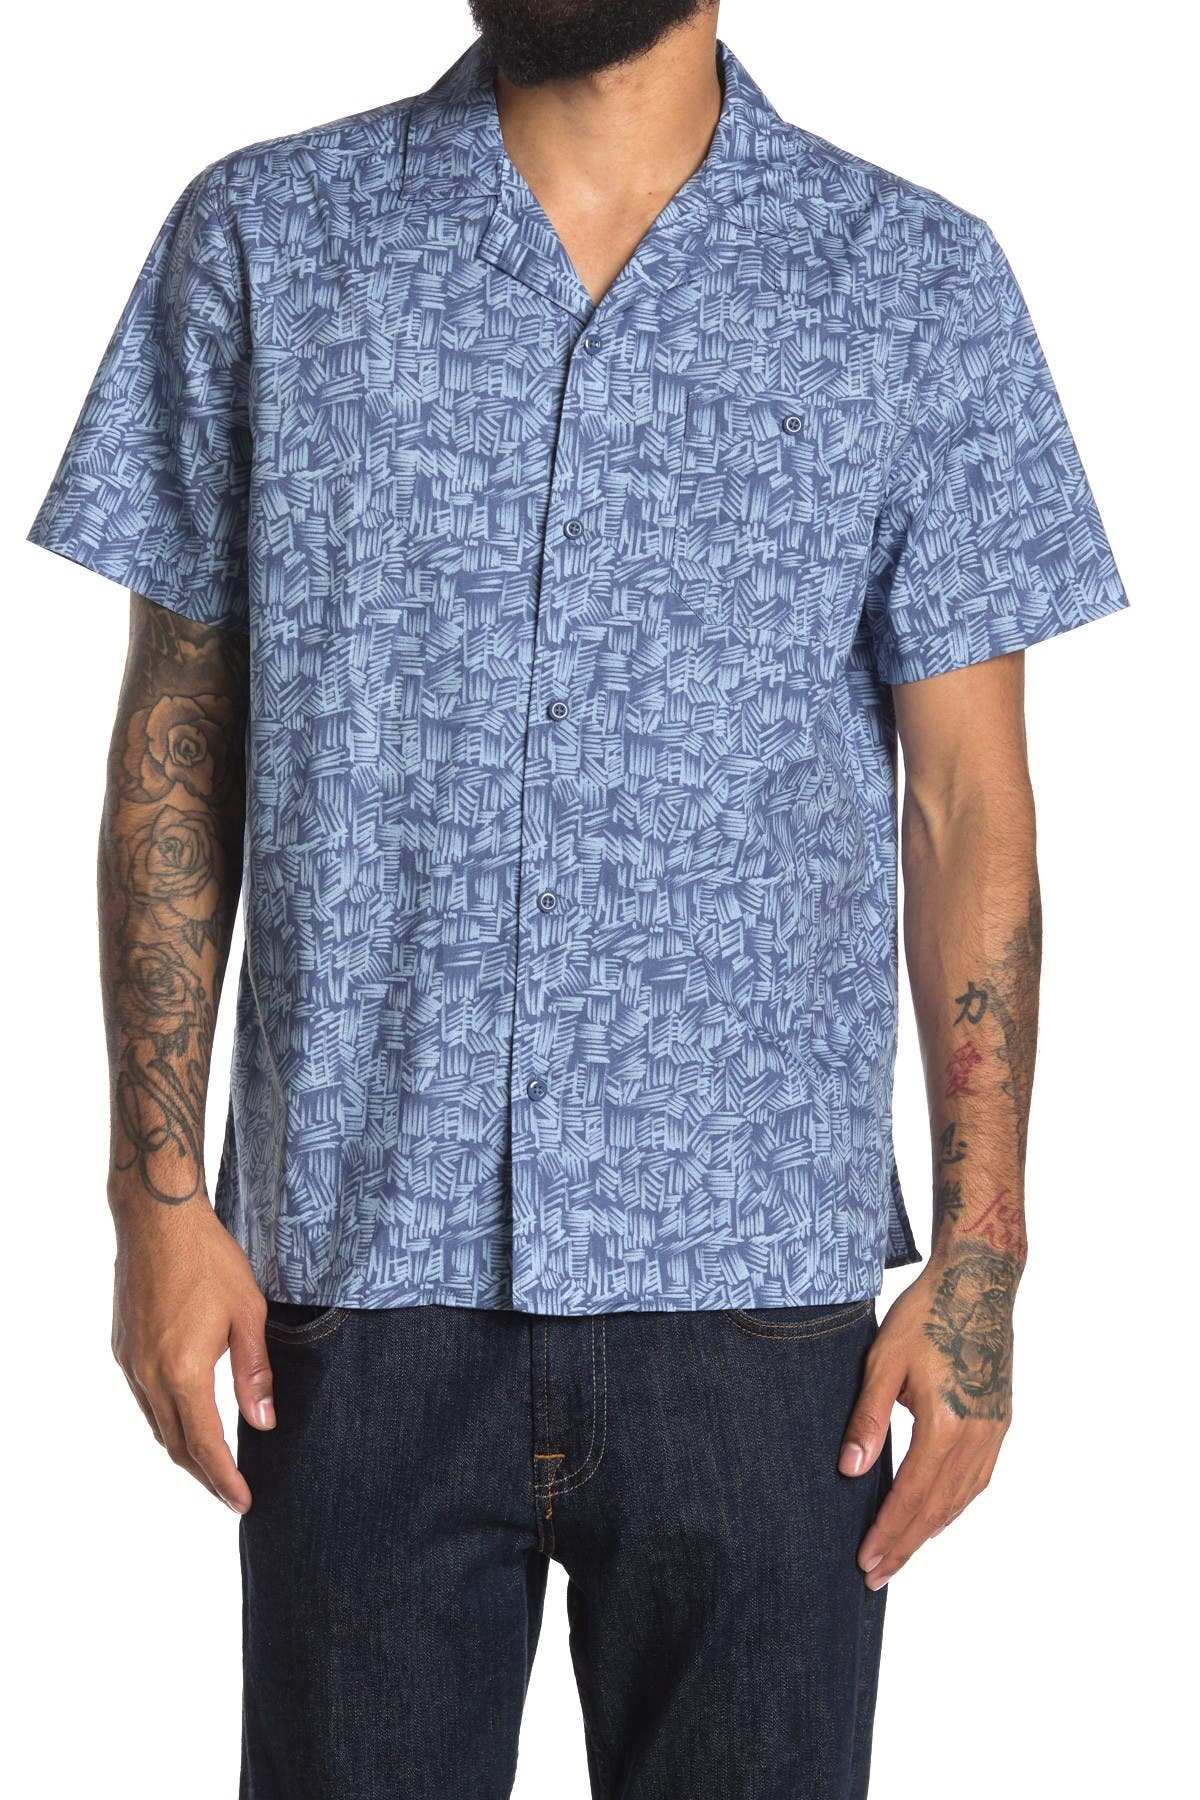 Image of Abound Printed Short Sleeve Regular Fit Camp Shirt